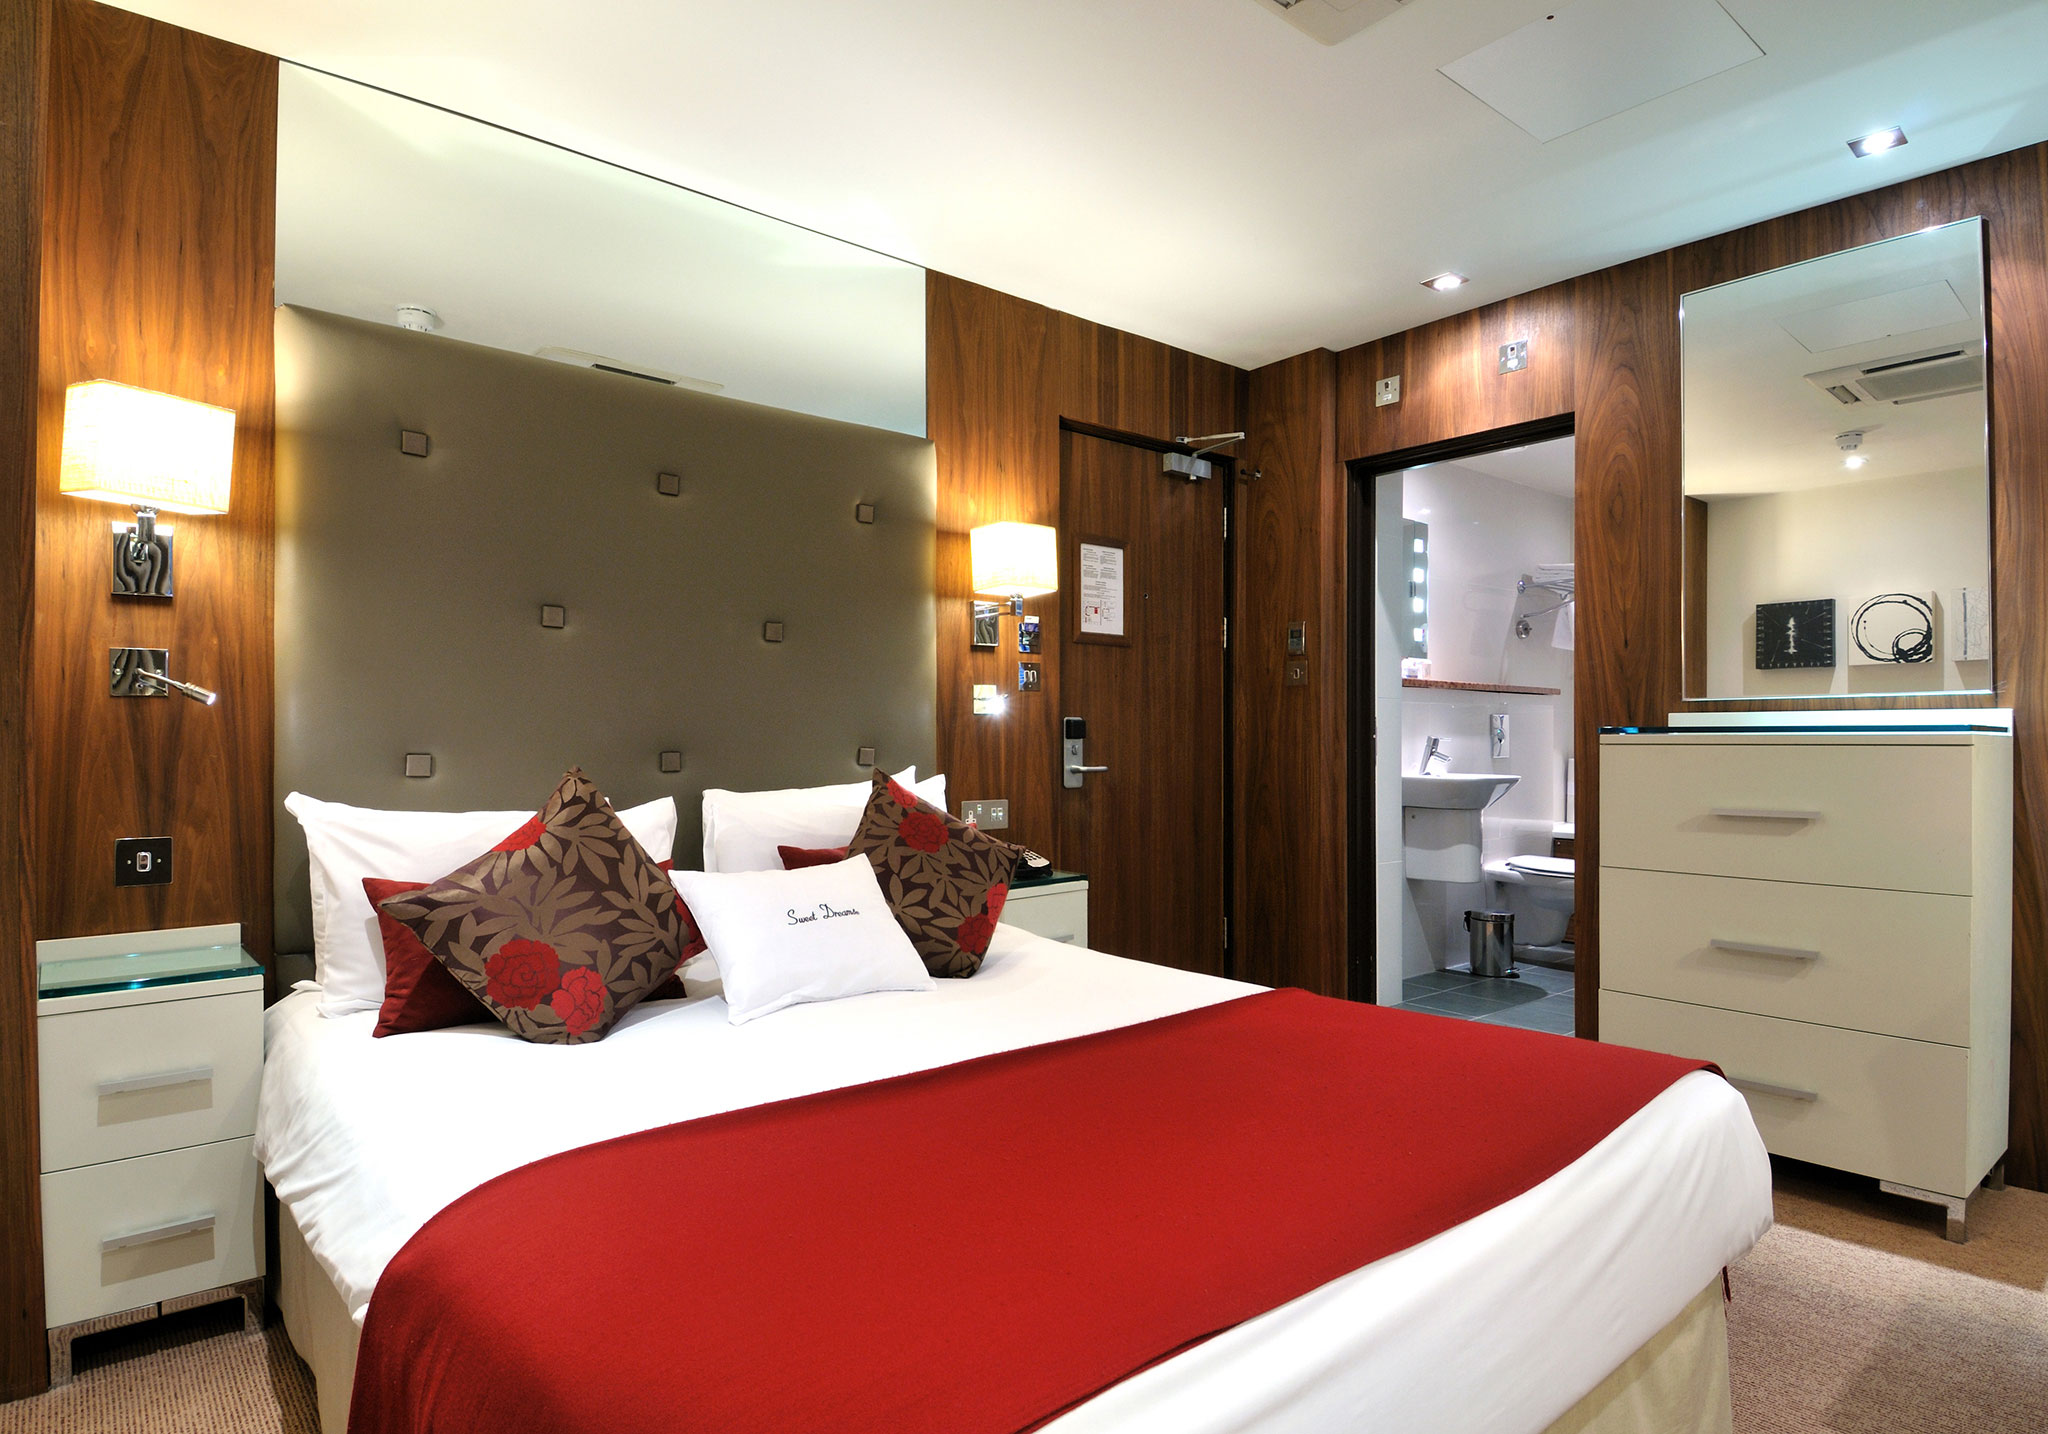 Doubletree By Hilton Heathrow Airport Hotel